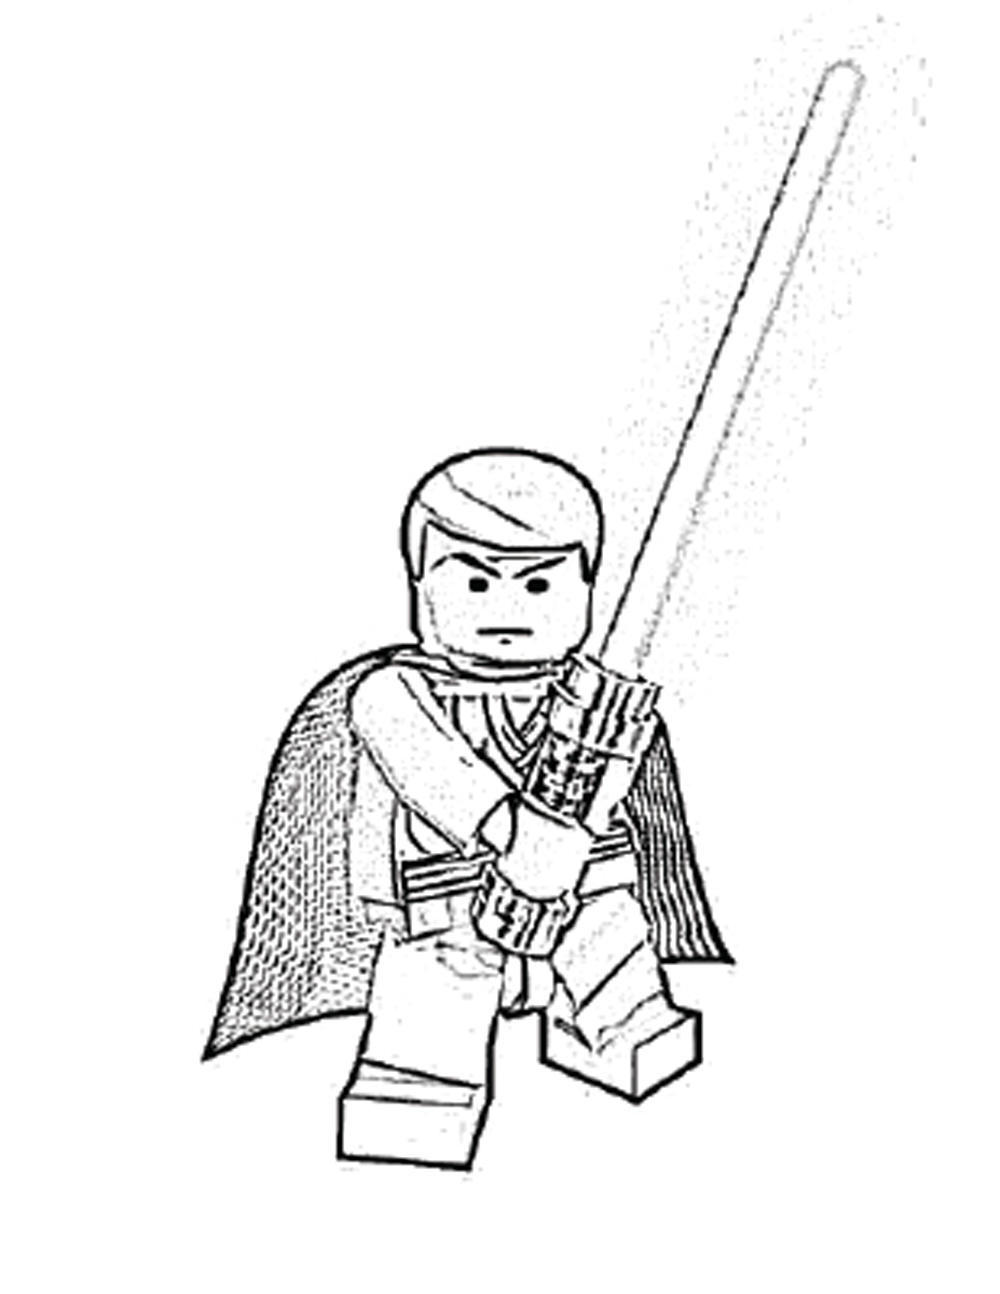 Orgprint Download Lego Star Wars Luke In Skywalker Coloring Page